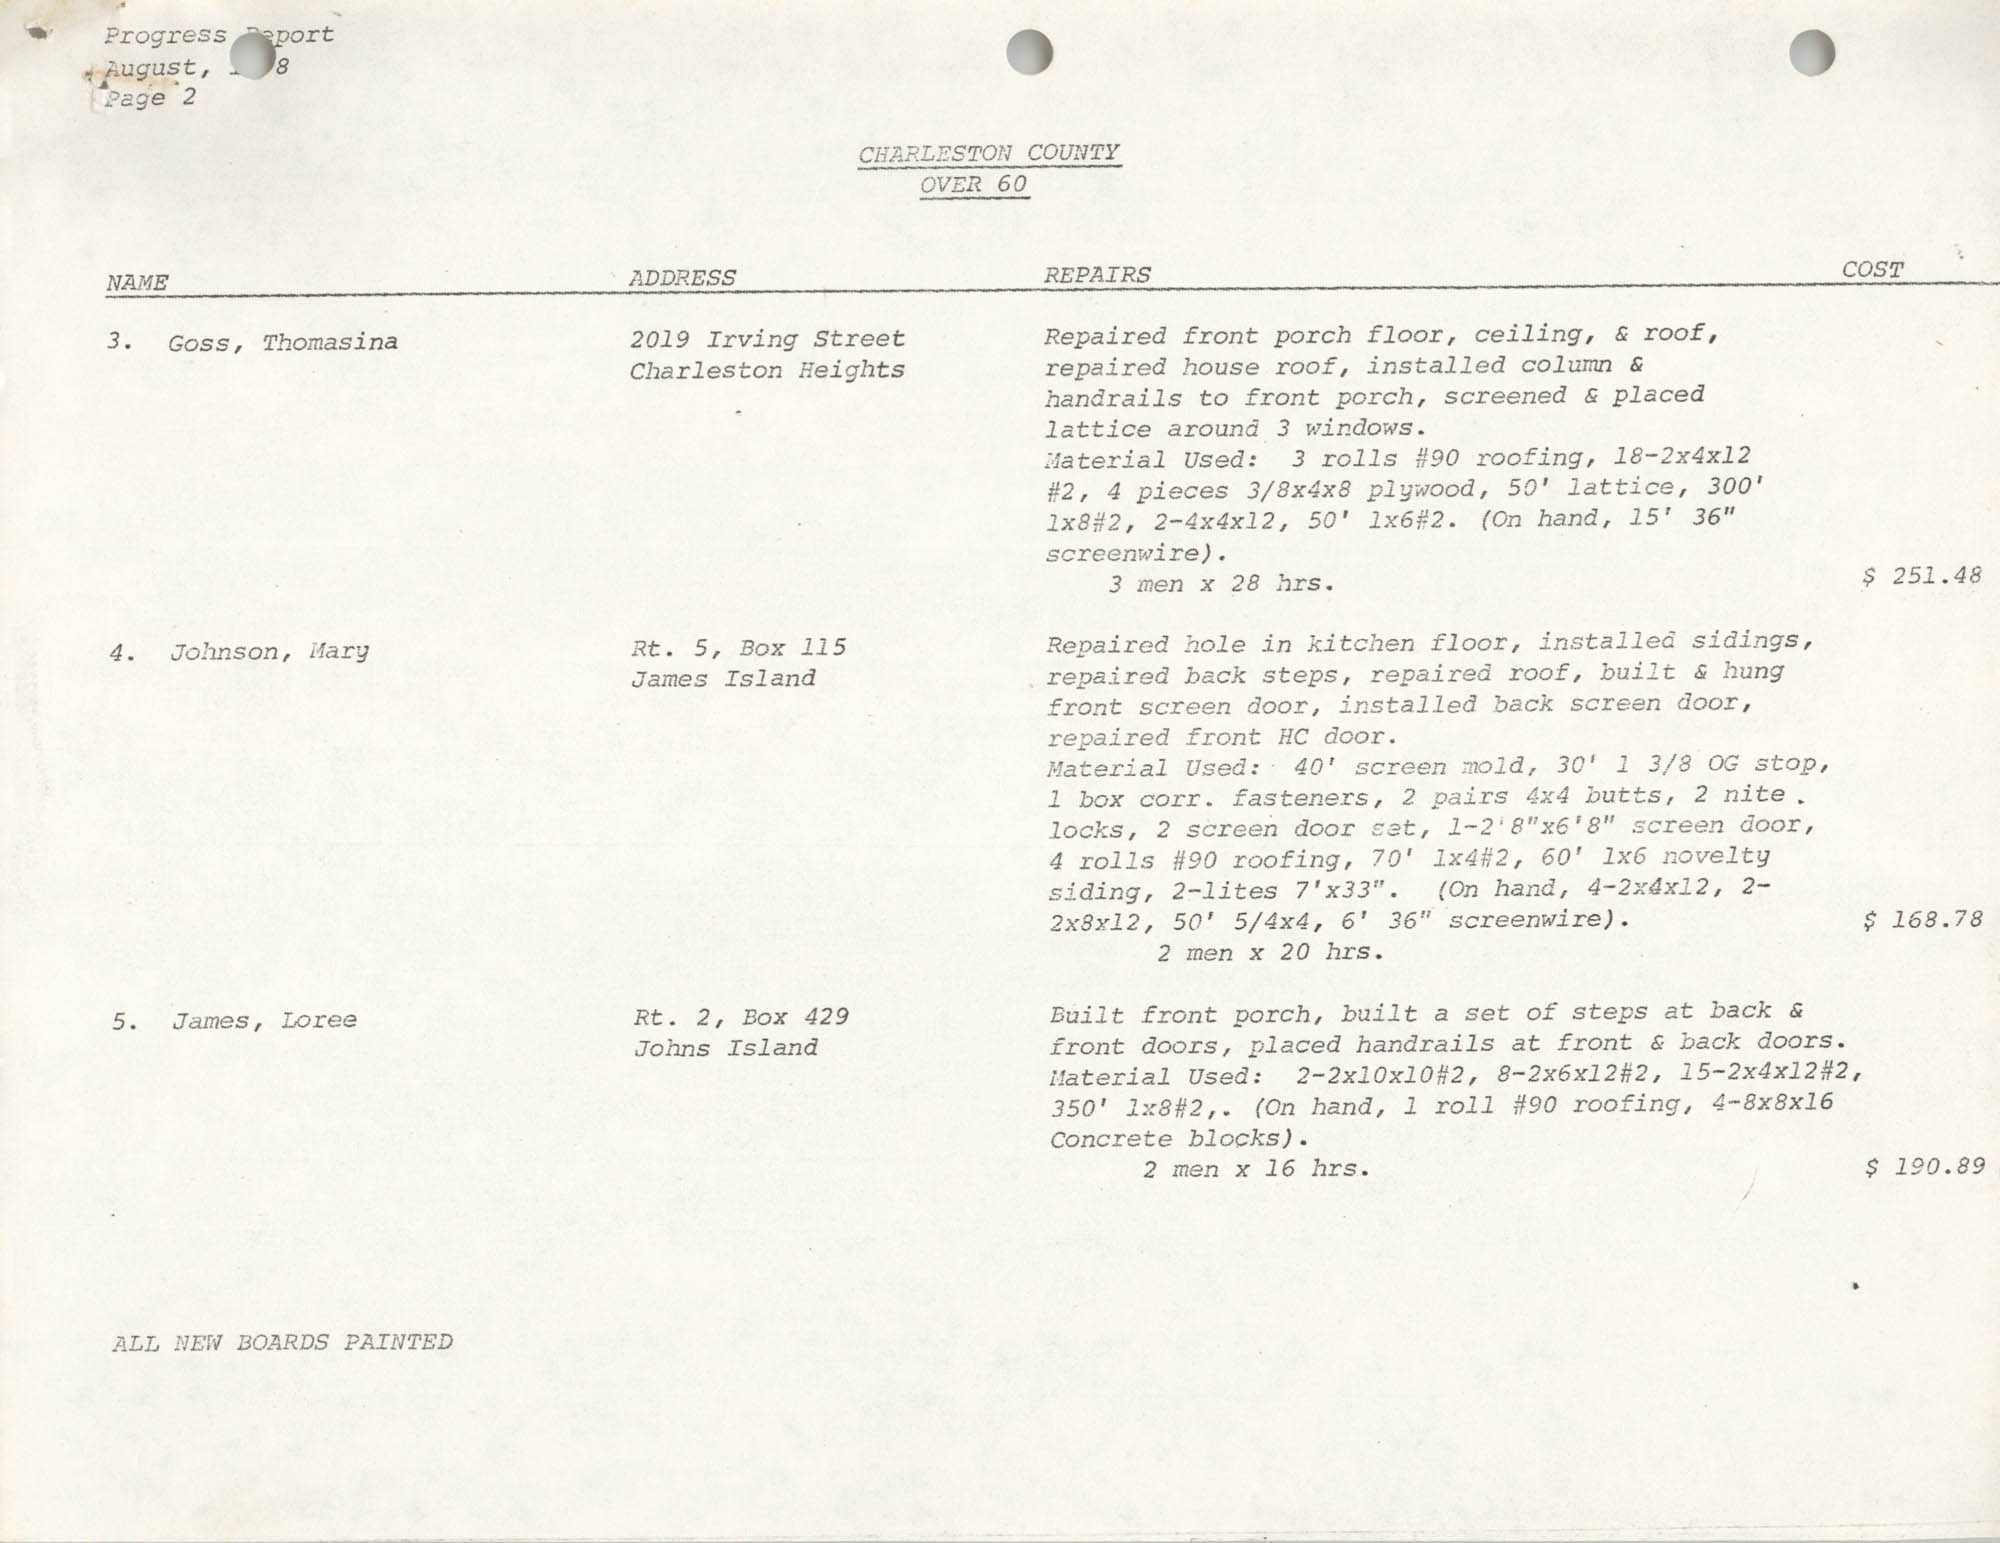 Housing Assistance Program Report, August 1978, Page 2